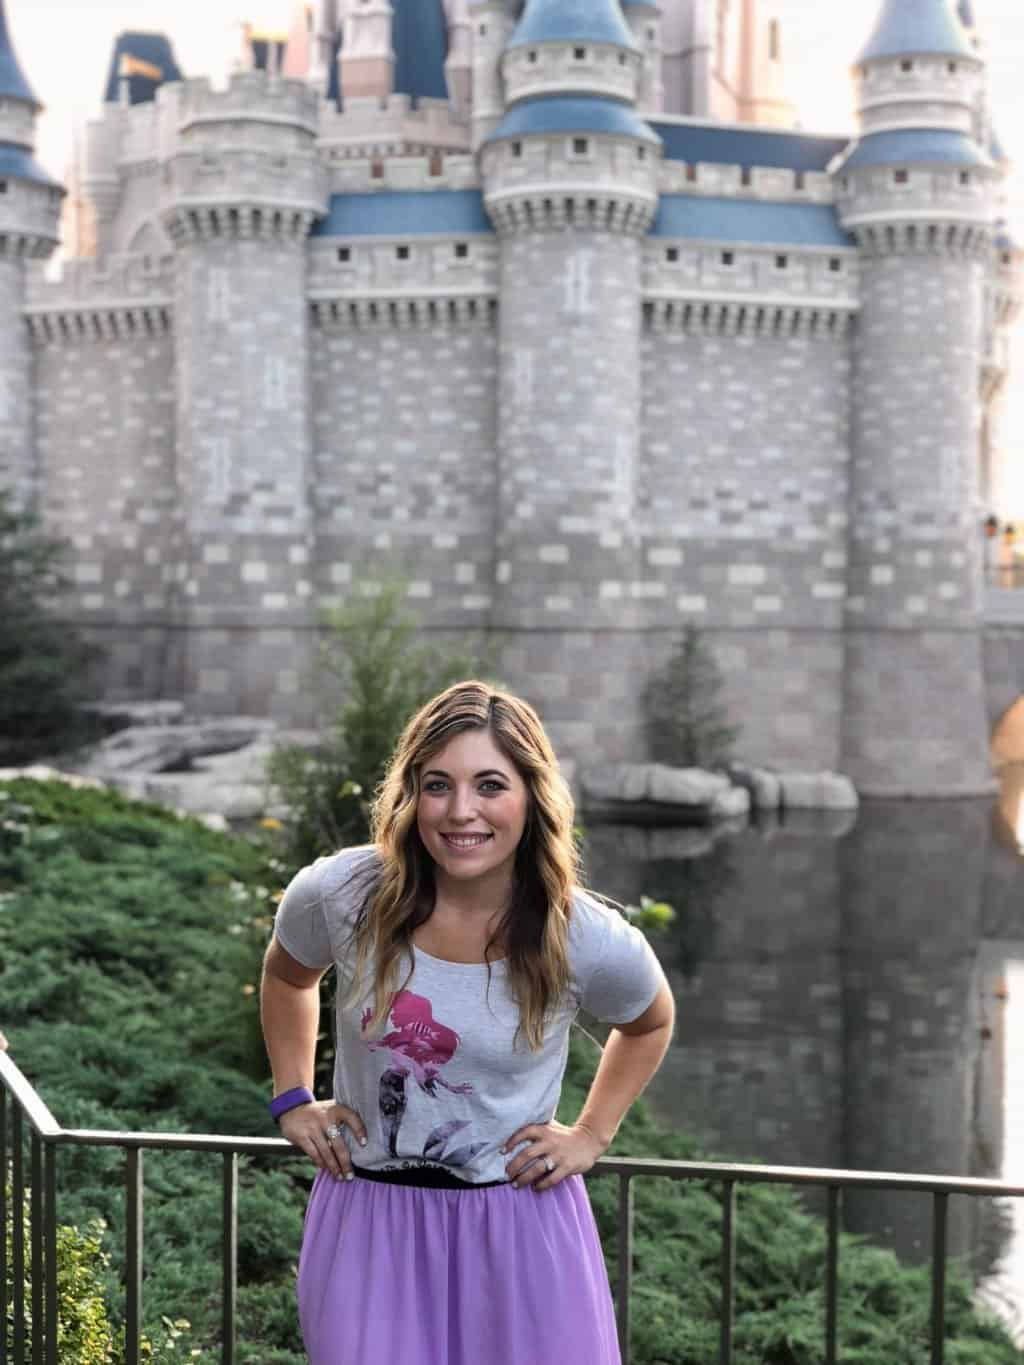 Best Place for Castle Pics at Disney